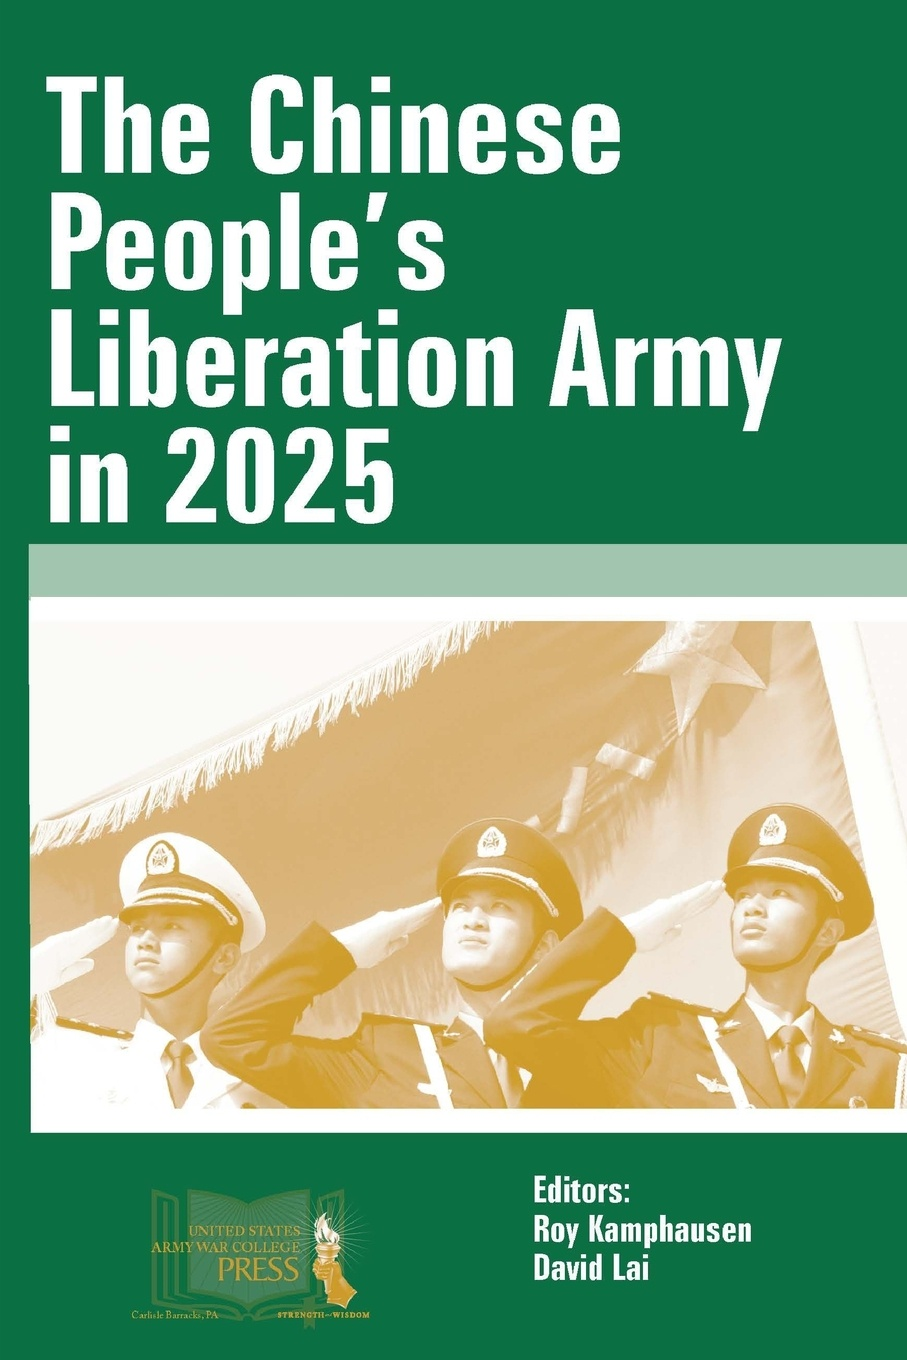 цена на Roy Kamphausen, David Lai, U.S. Army War College The Chinese People's Liberation Army in 2025